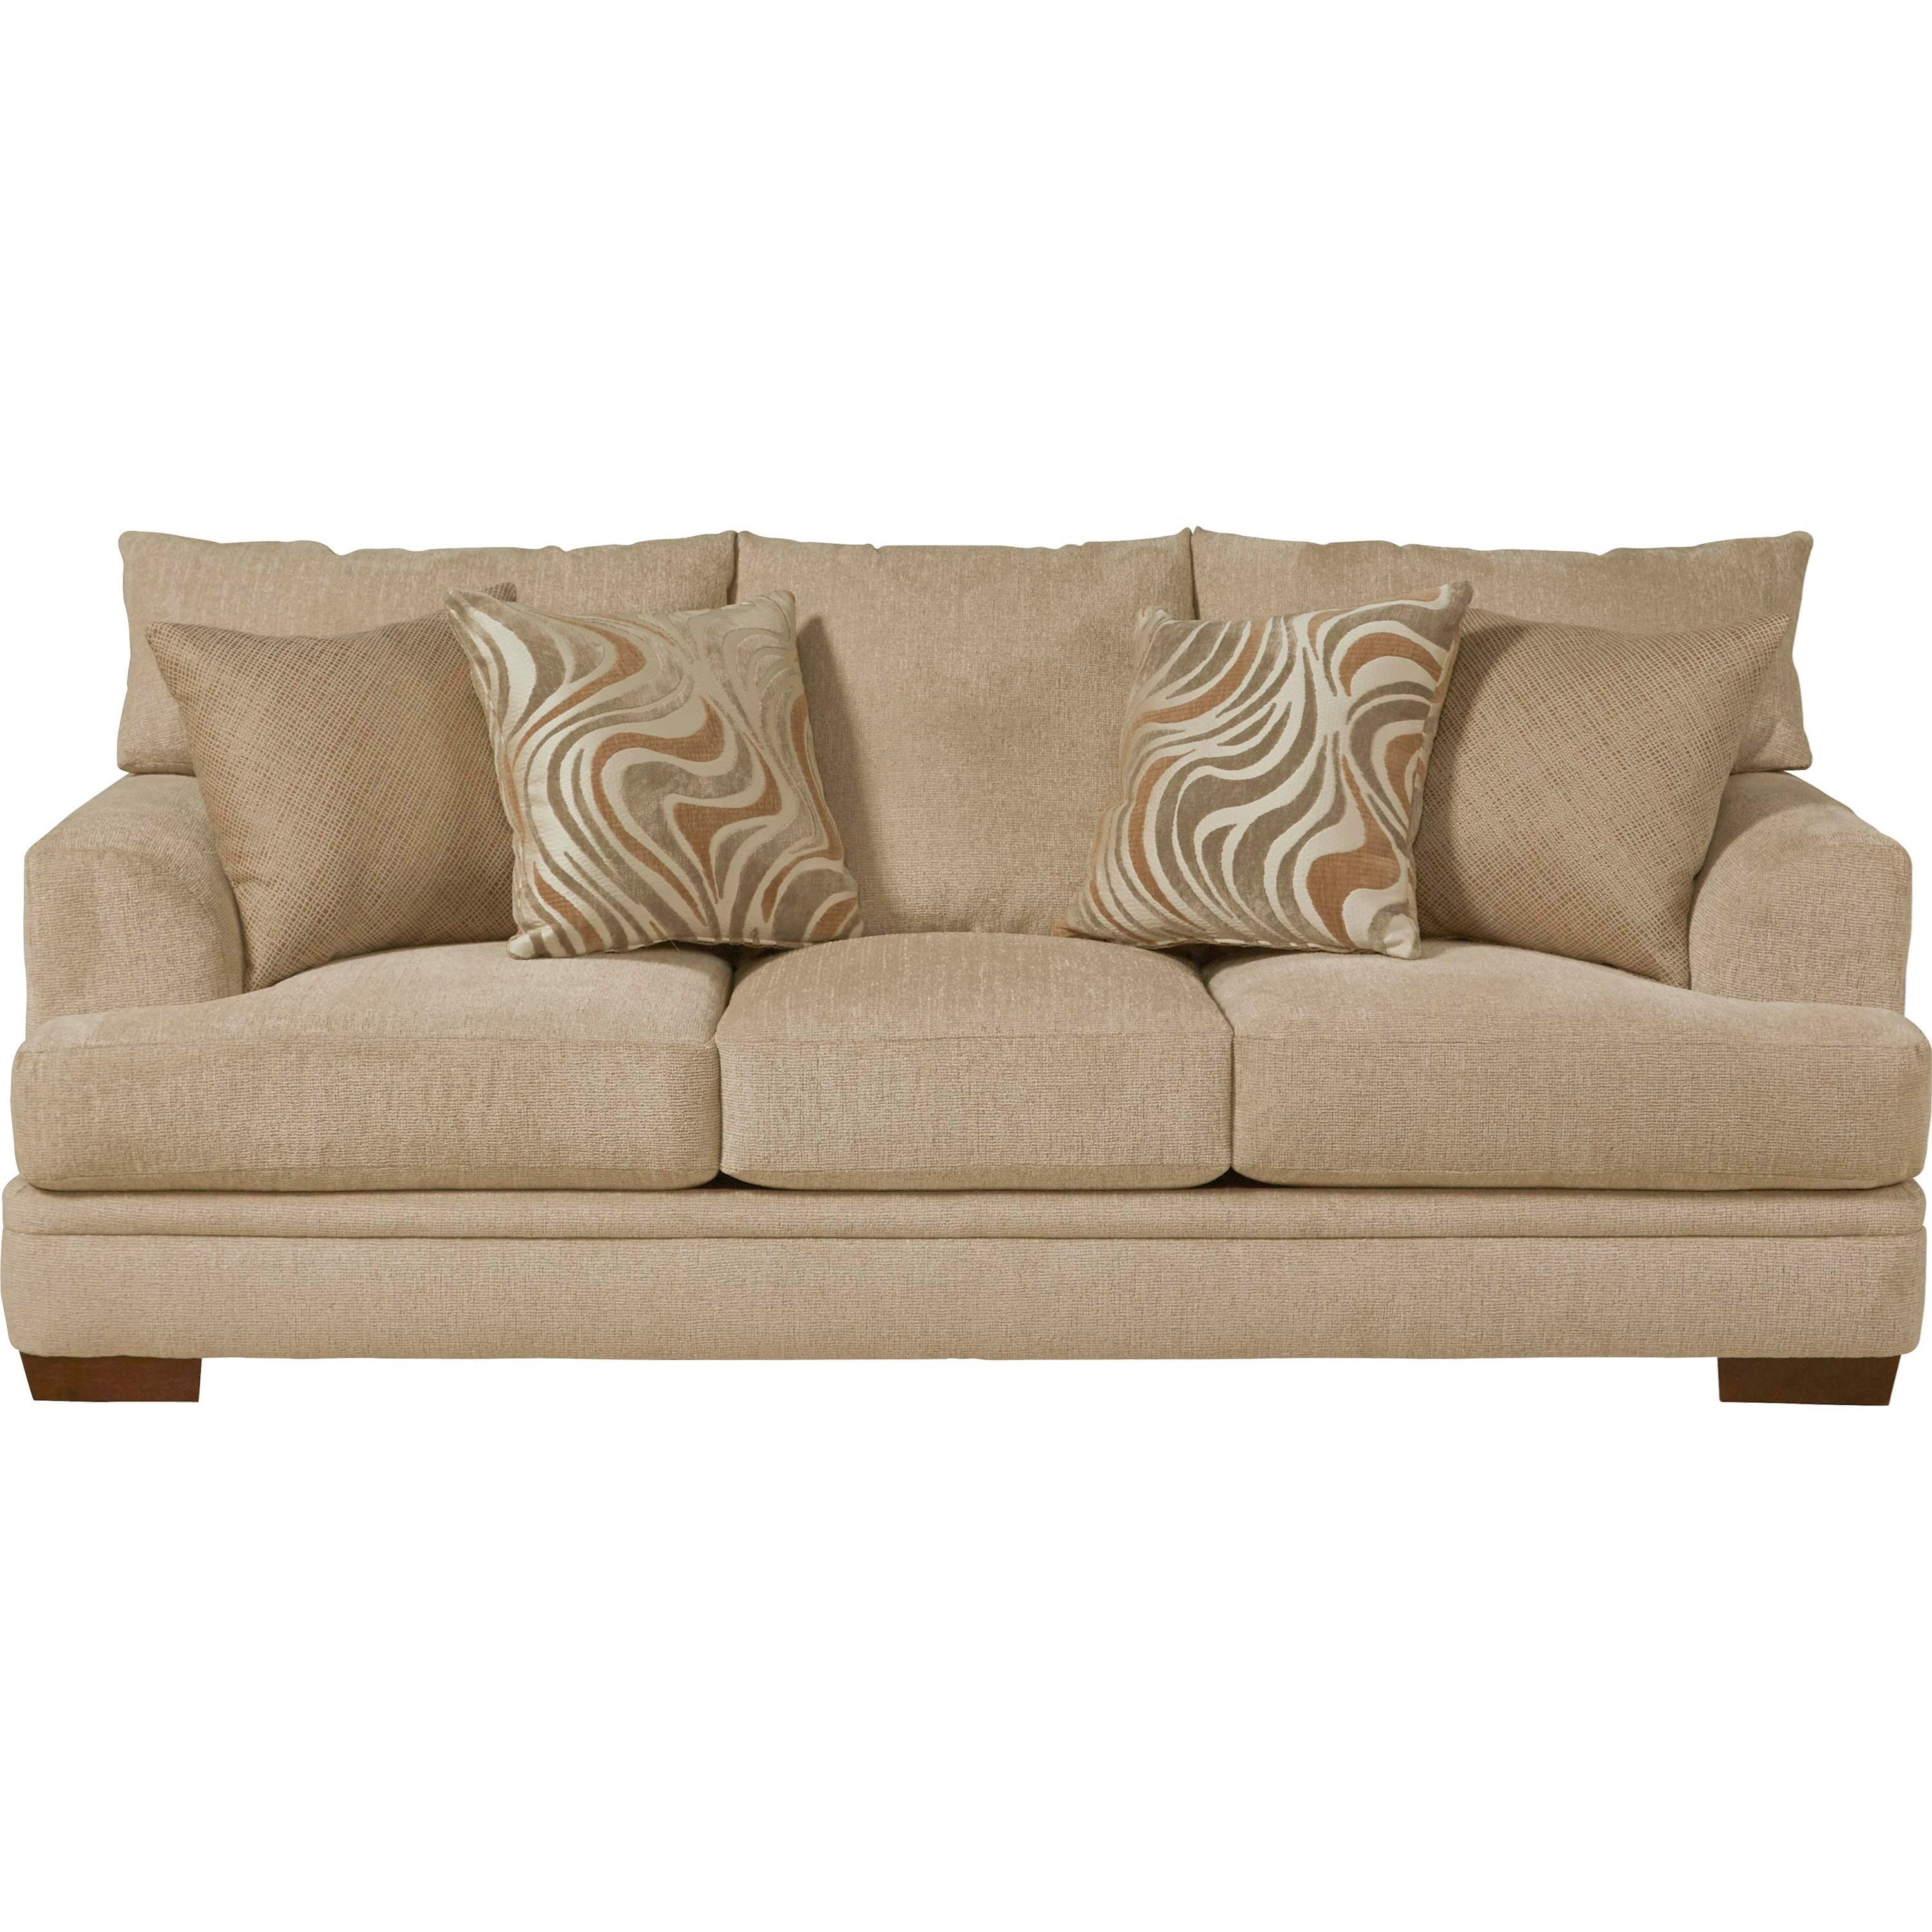 Jackson Furniture Calkin Sofa with Casual Style - Item Number: 4462-03-2000-66